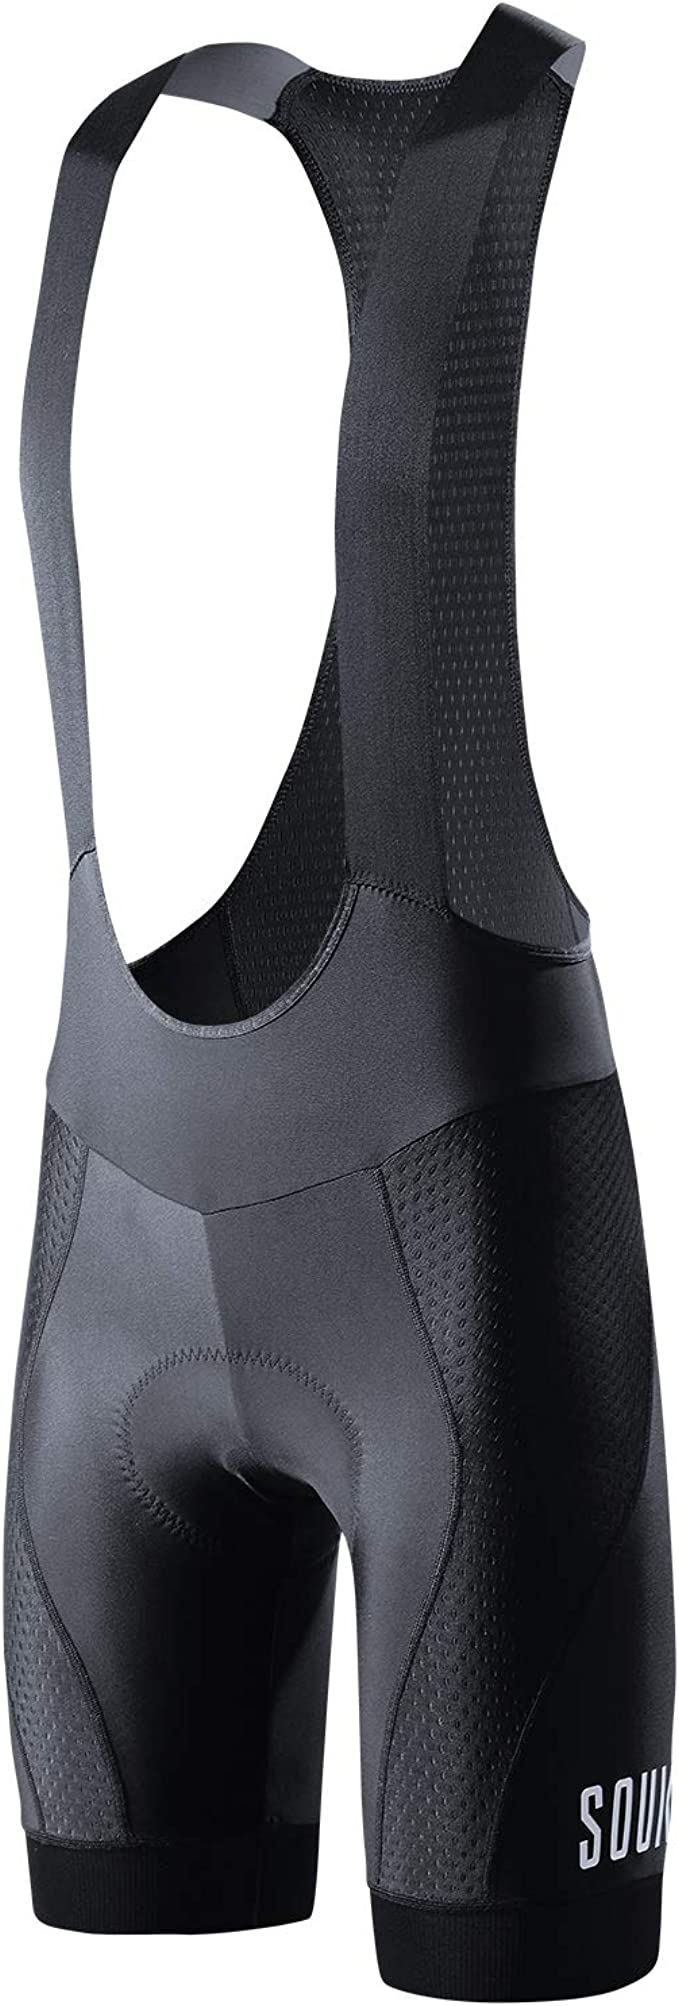 Souke Sports Womens Cycling Shorts 4D Gel Padded Breathable Bike Shorts Anti-Slip with Pockets